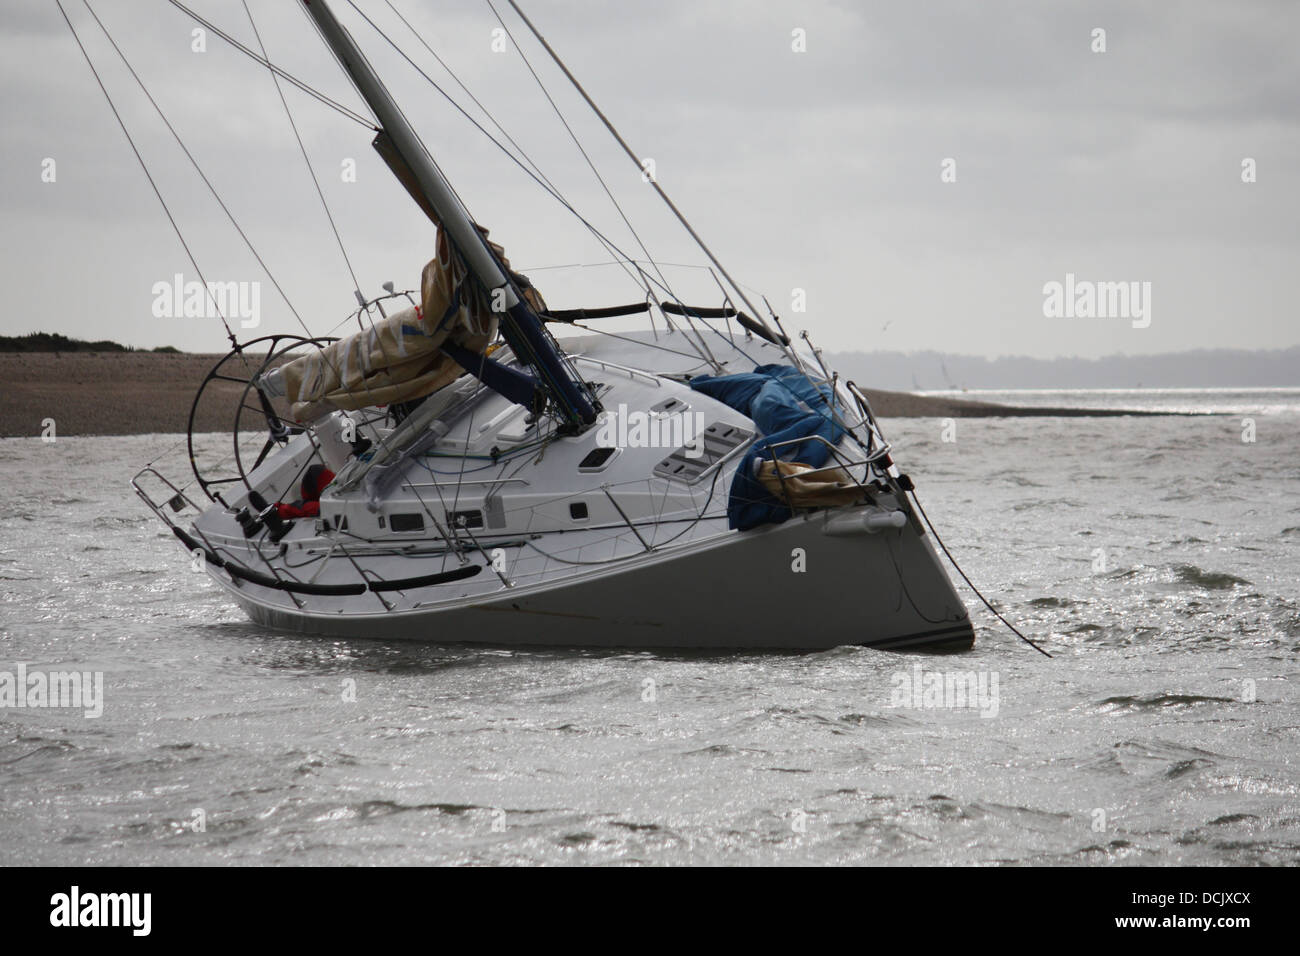 yacht heeling due to being aground at the entrance to hamble river in the solent - Stock Image